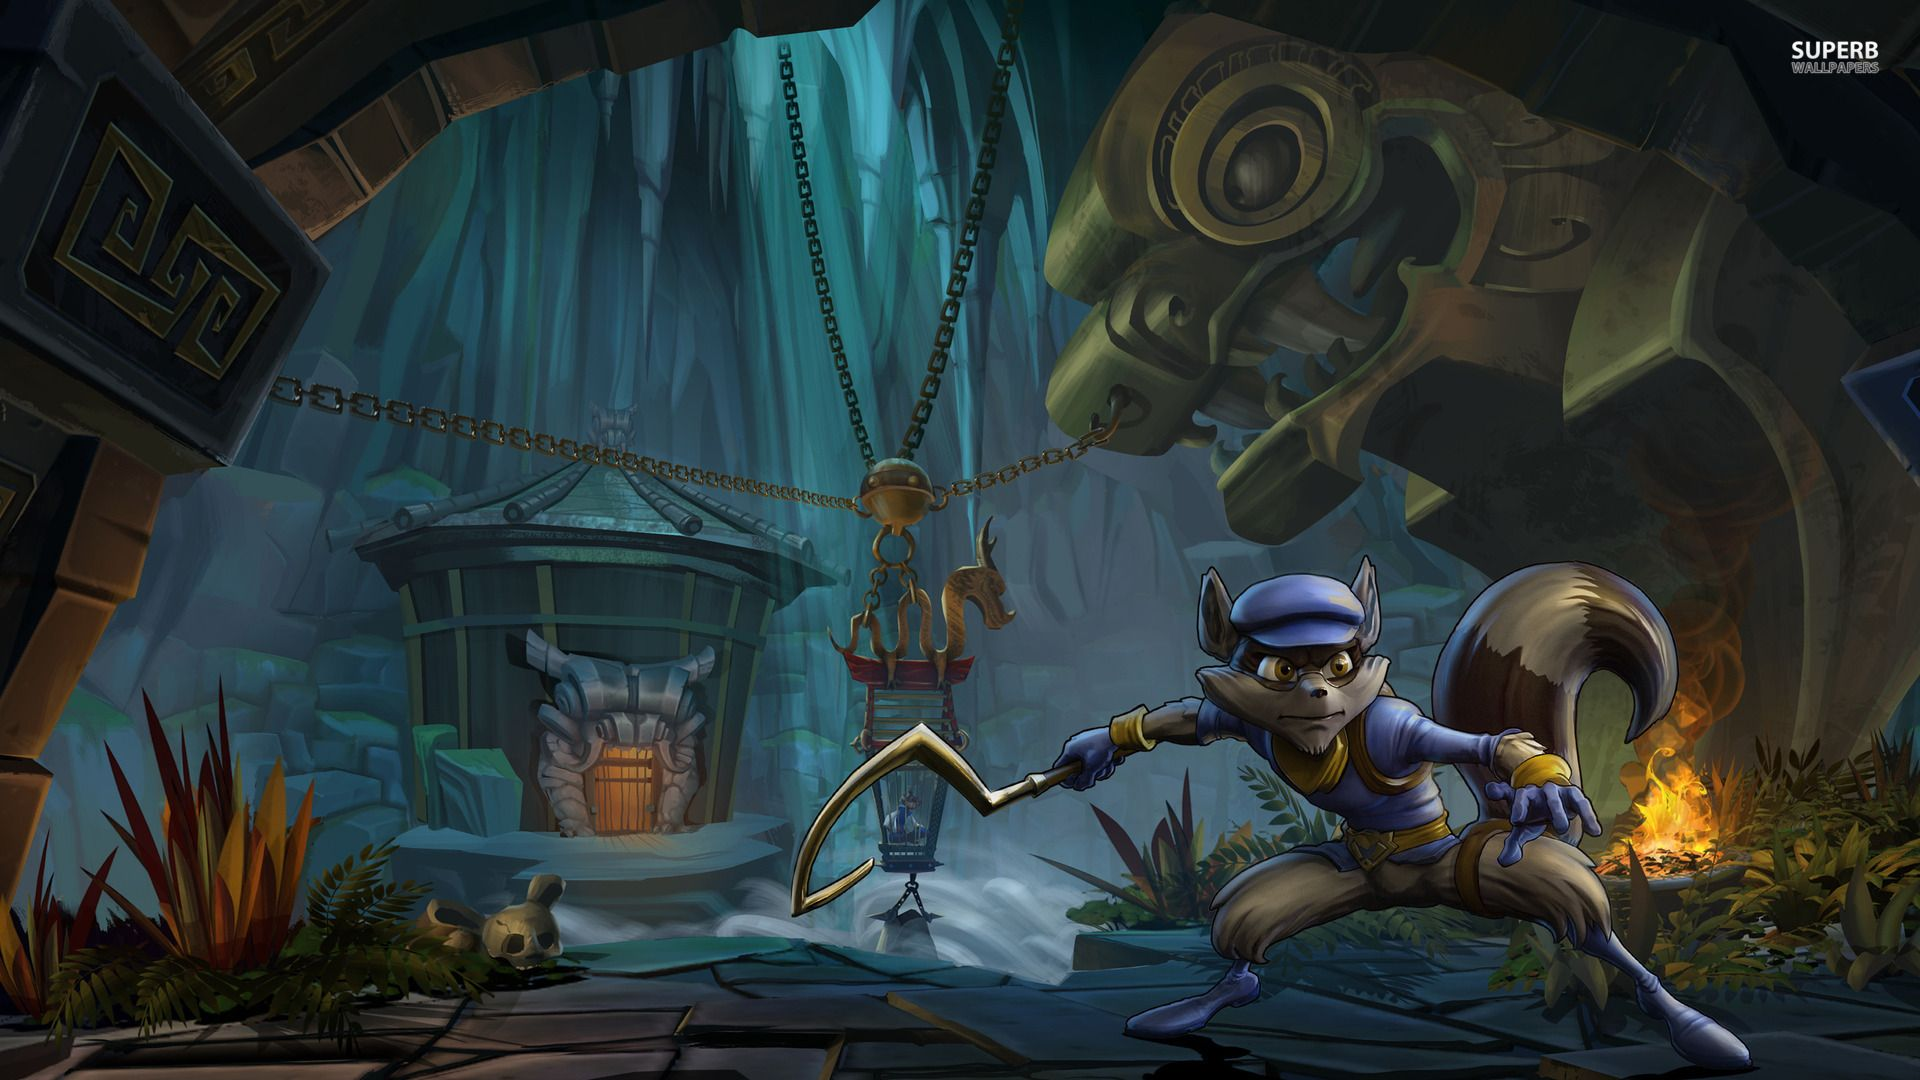 Sly Cooper Thieves in Time Wallpaper Game Wallpapers 1920x1080PX 1920x1080